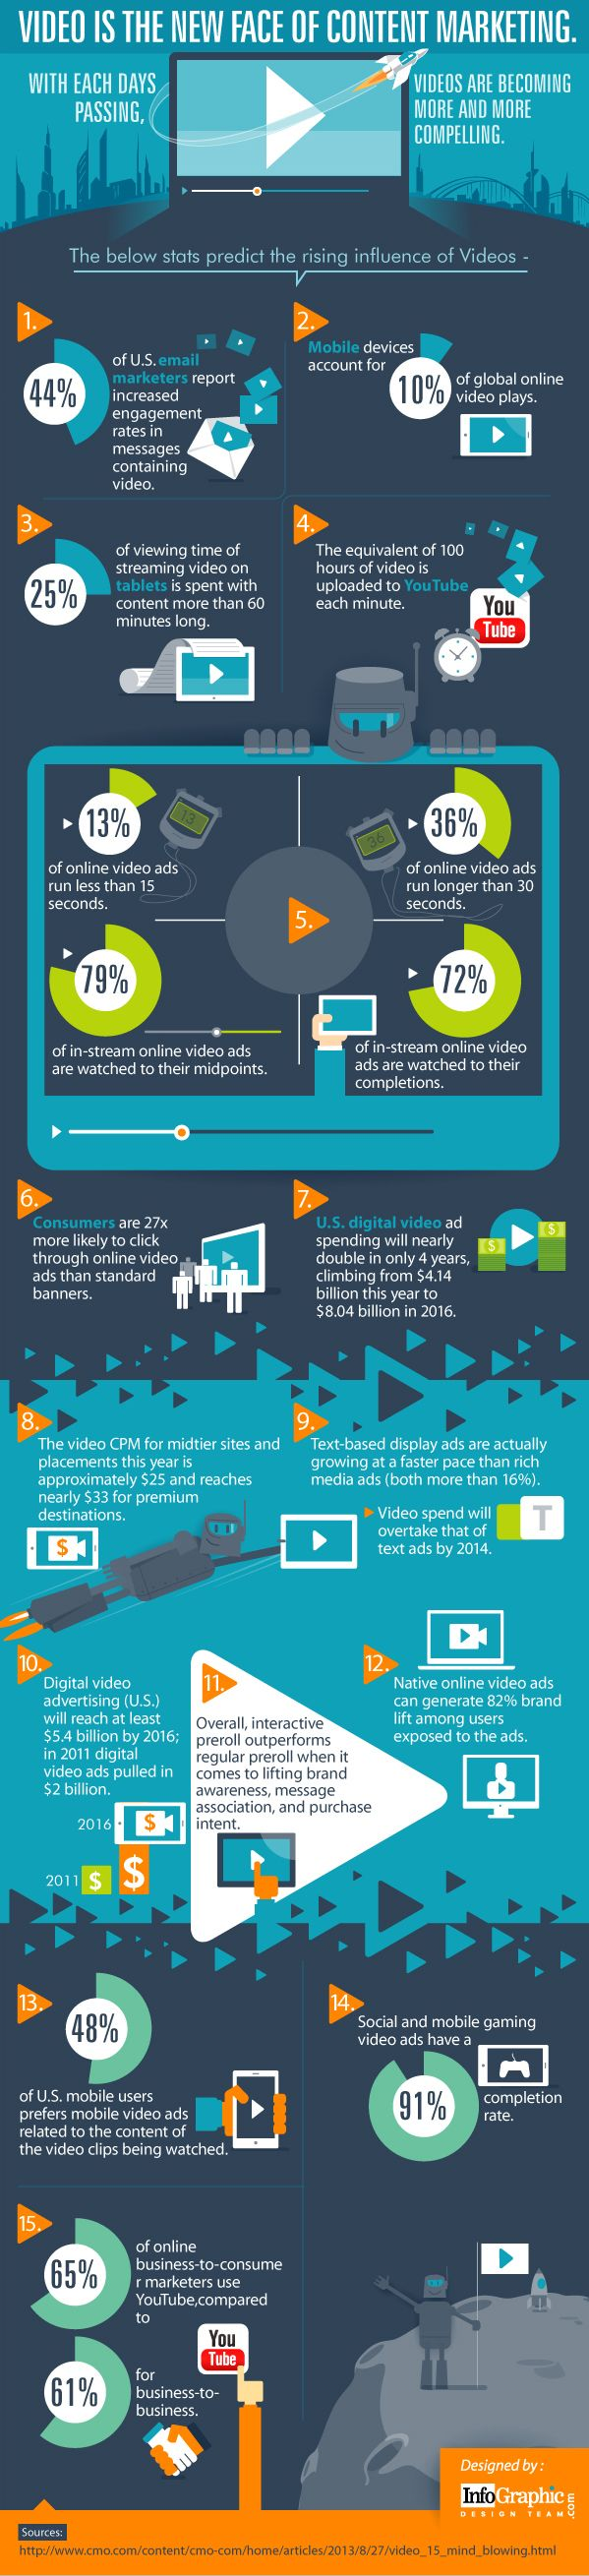 Why Is Video The New Face Of Content Marketing? #contentmarketing #infographic